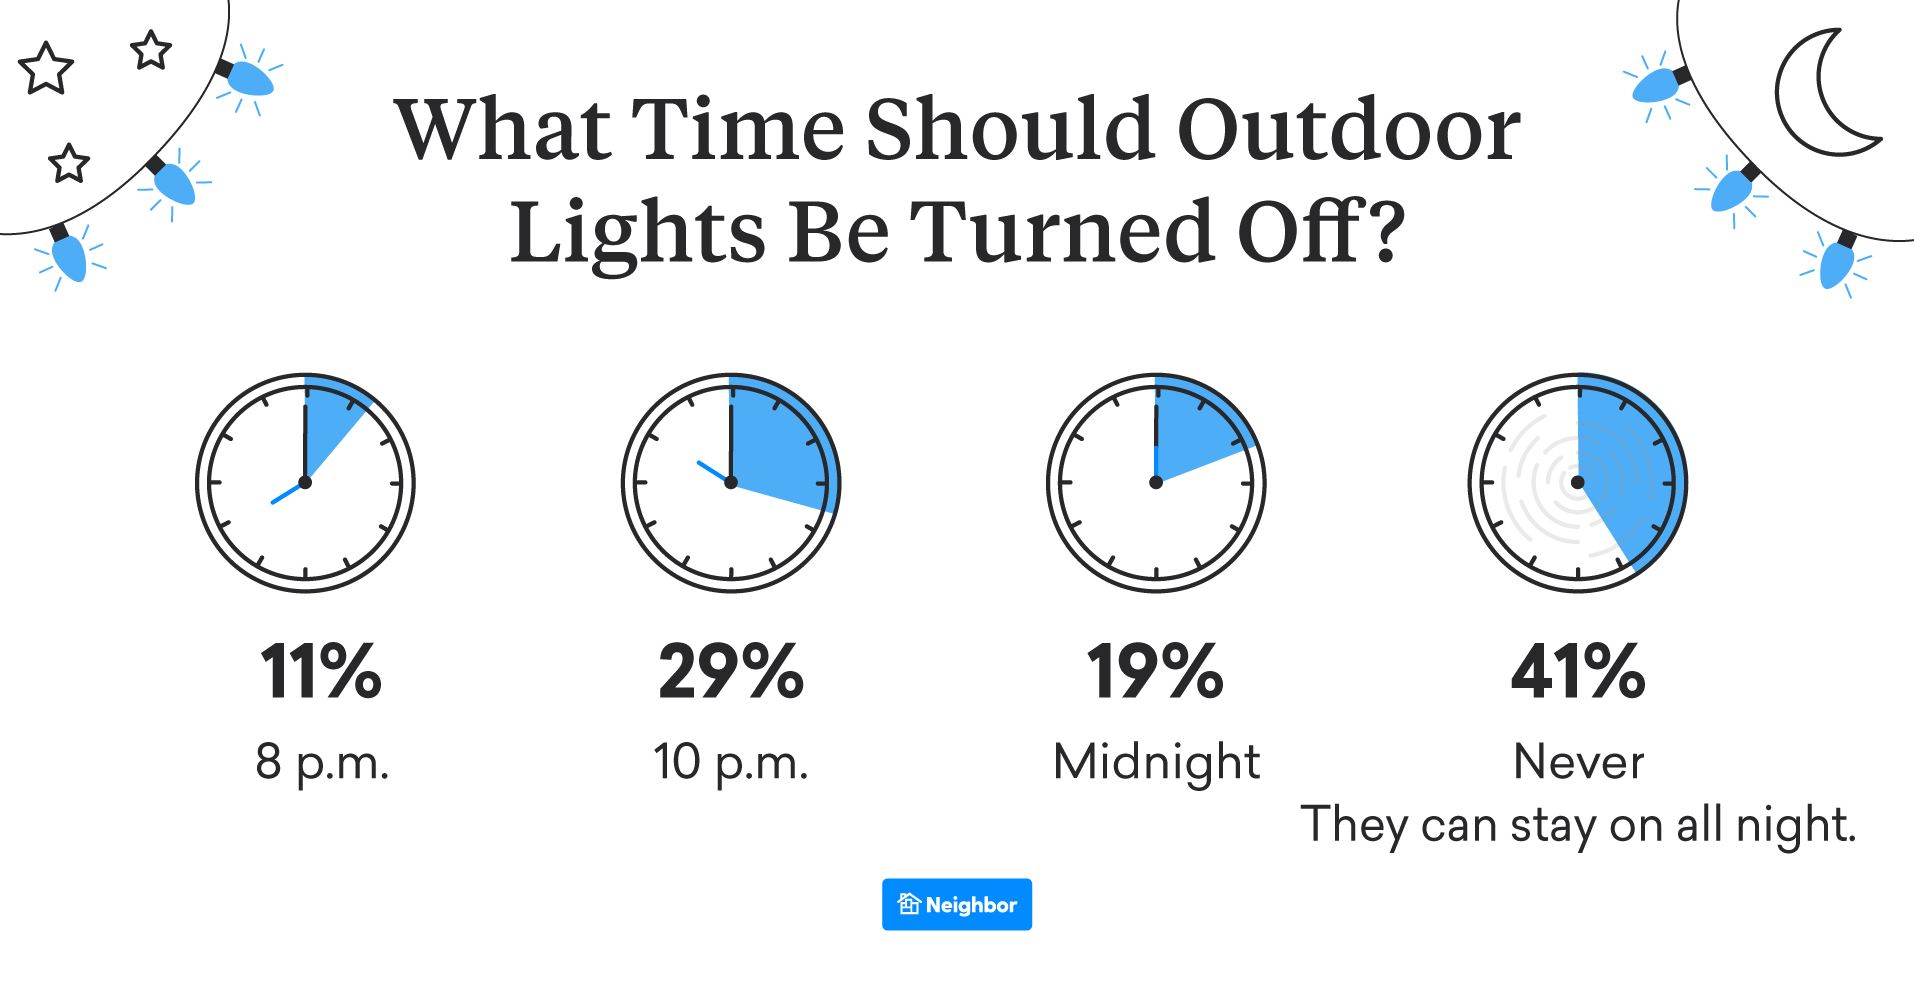 What Time Should Holiday Lights Be Turned Off? Most People Say There Isn't One